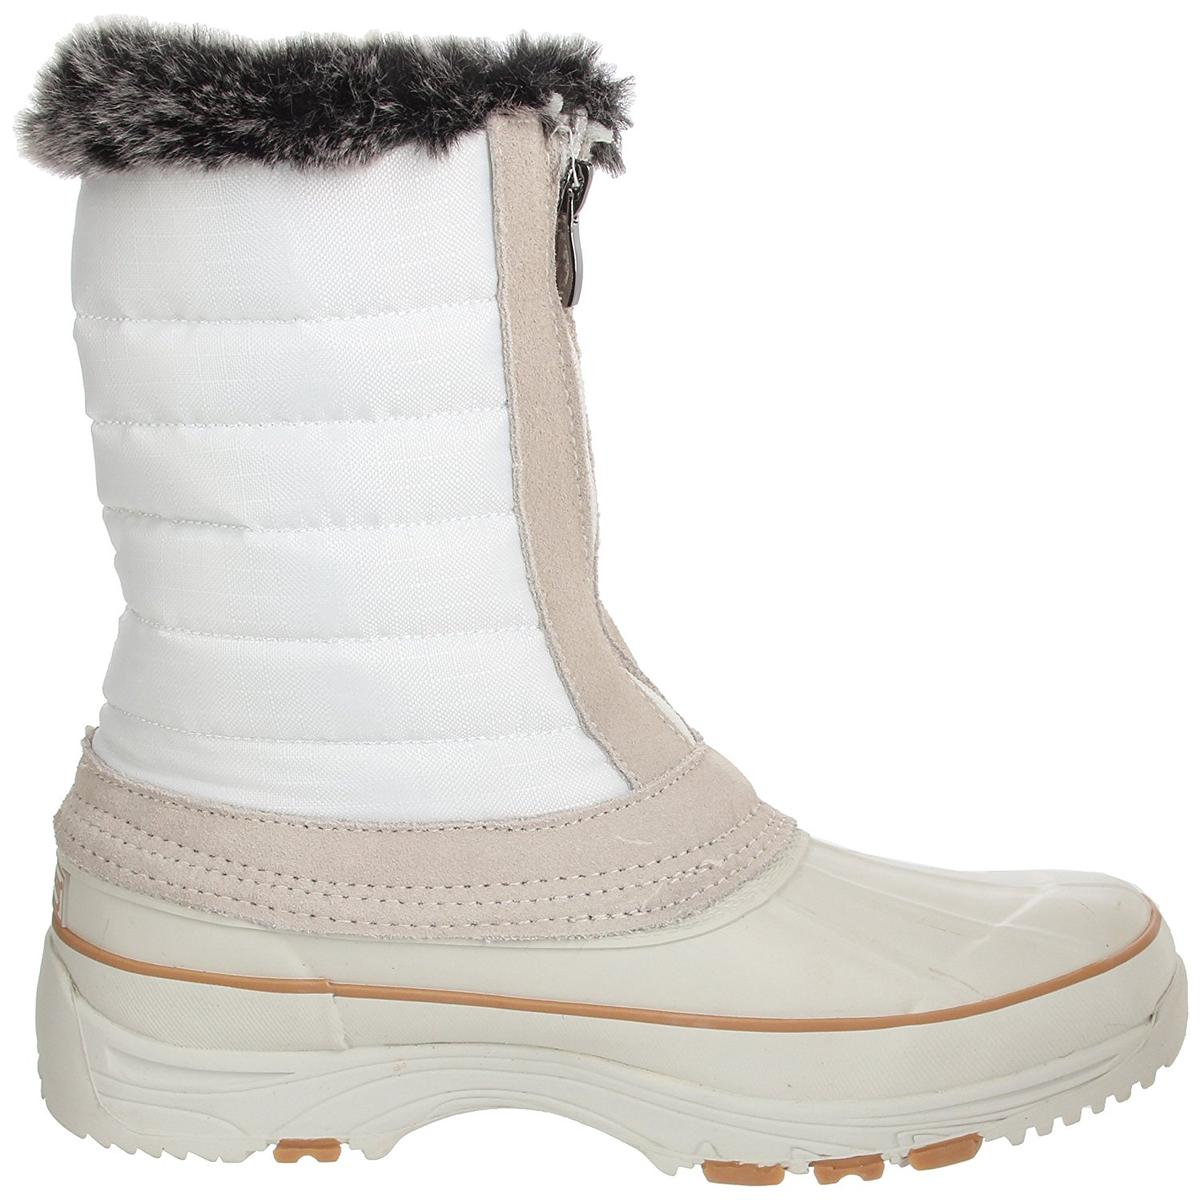 Aquatherm by Santana Women's Gander White Ankle Boot 10M